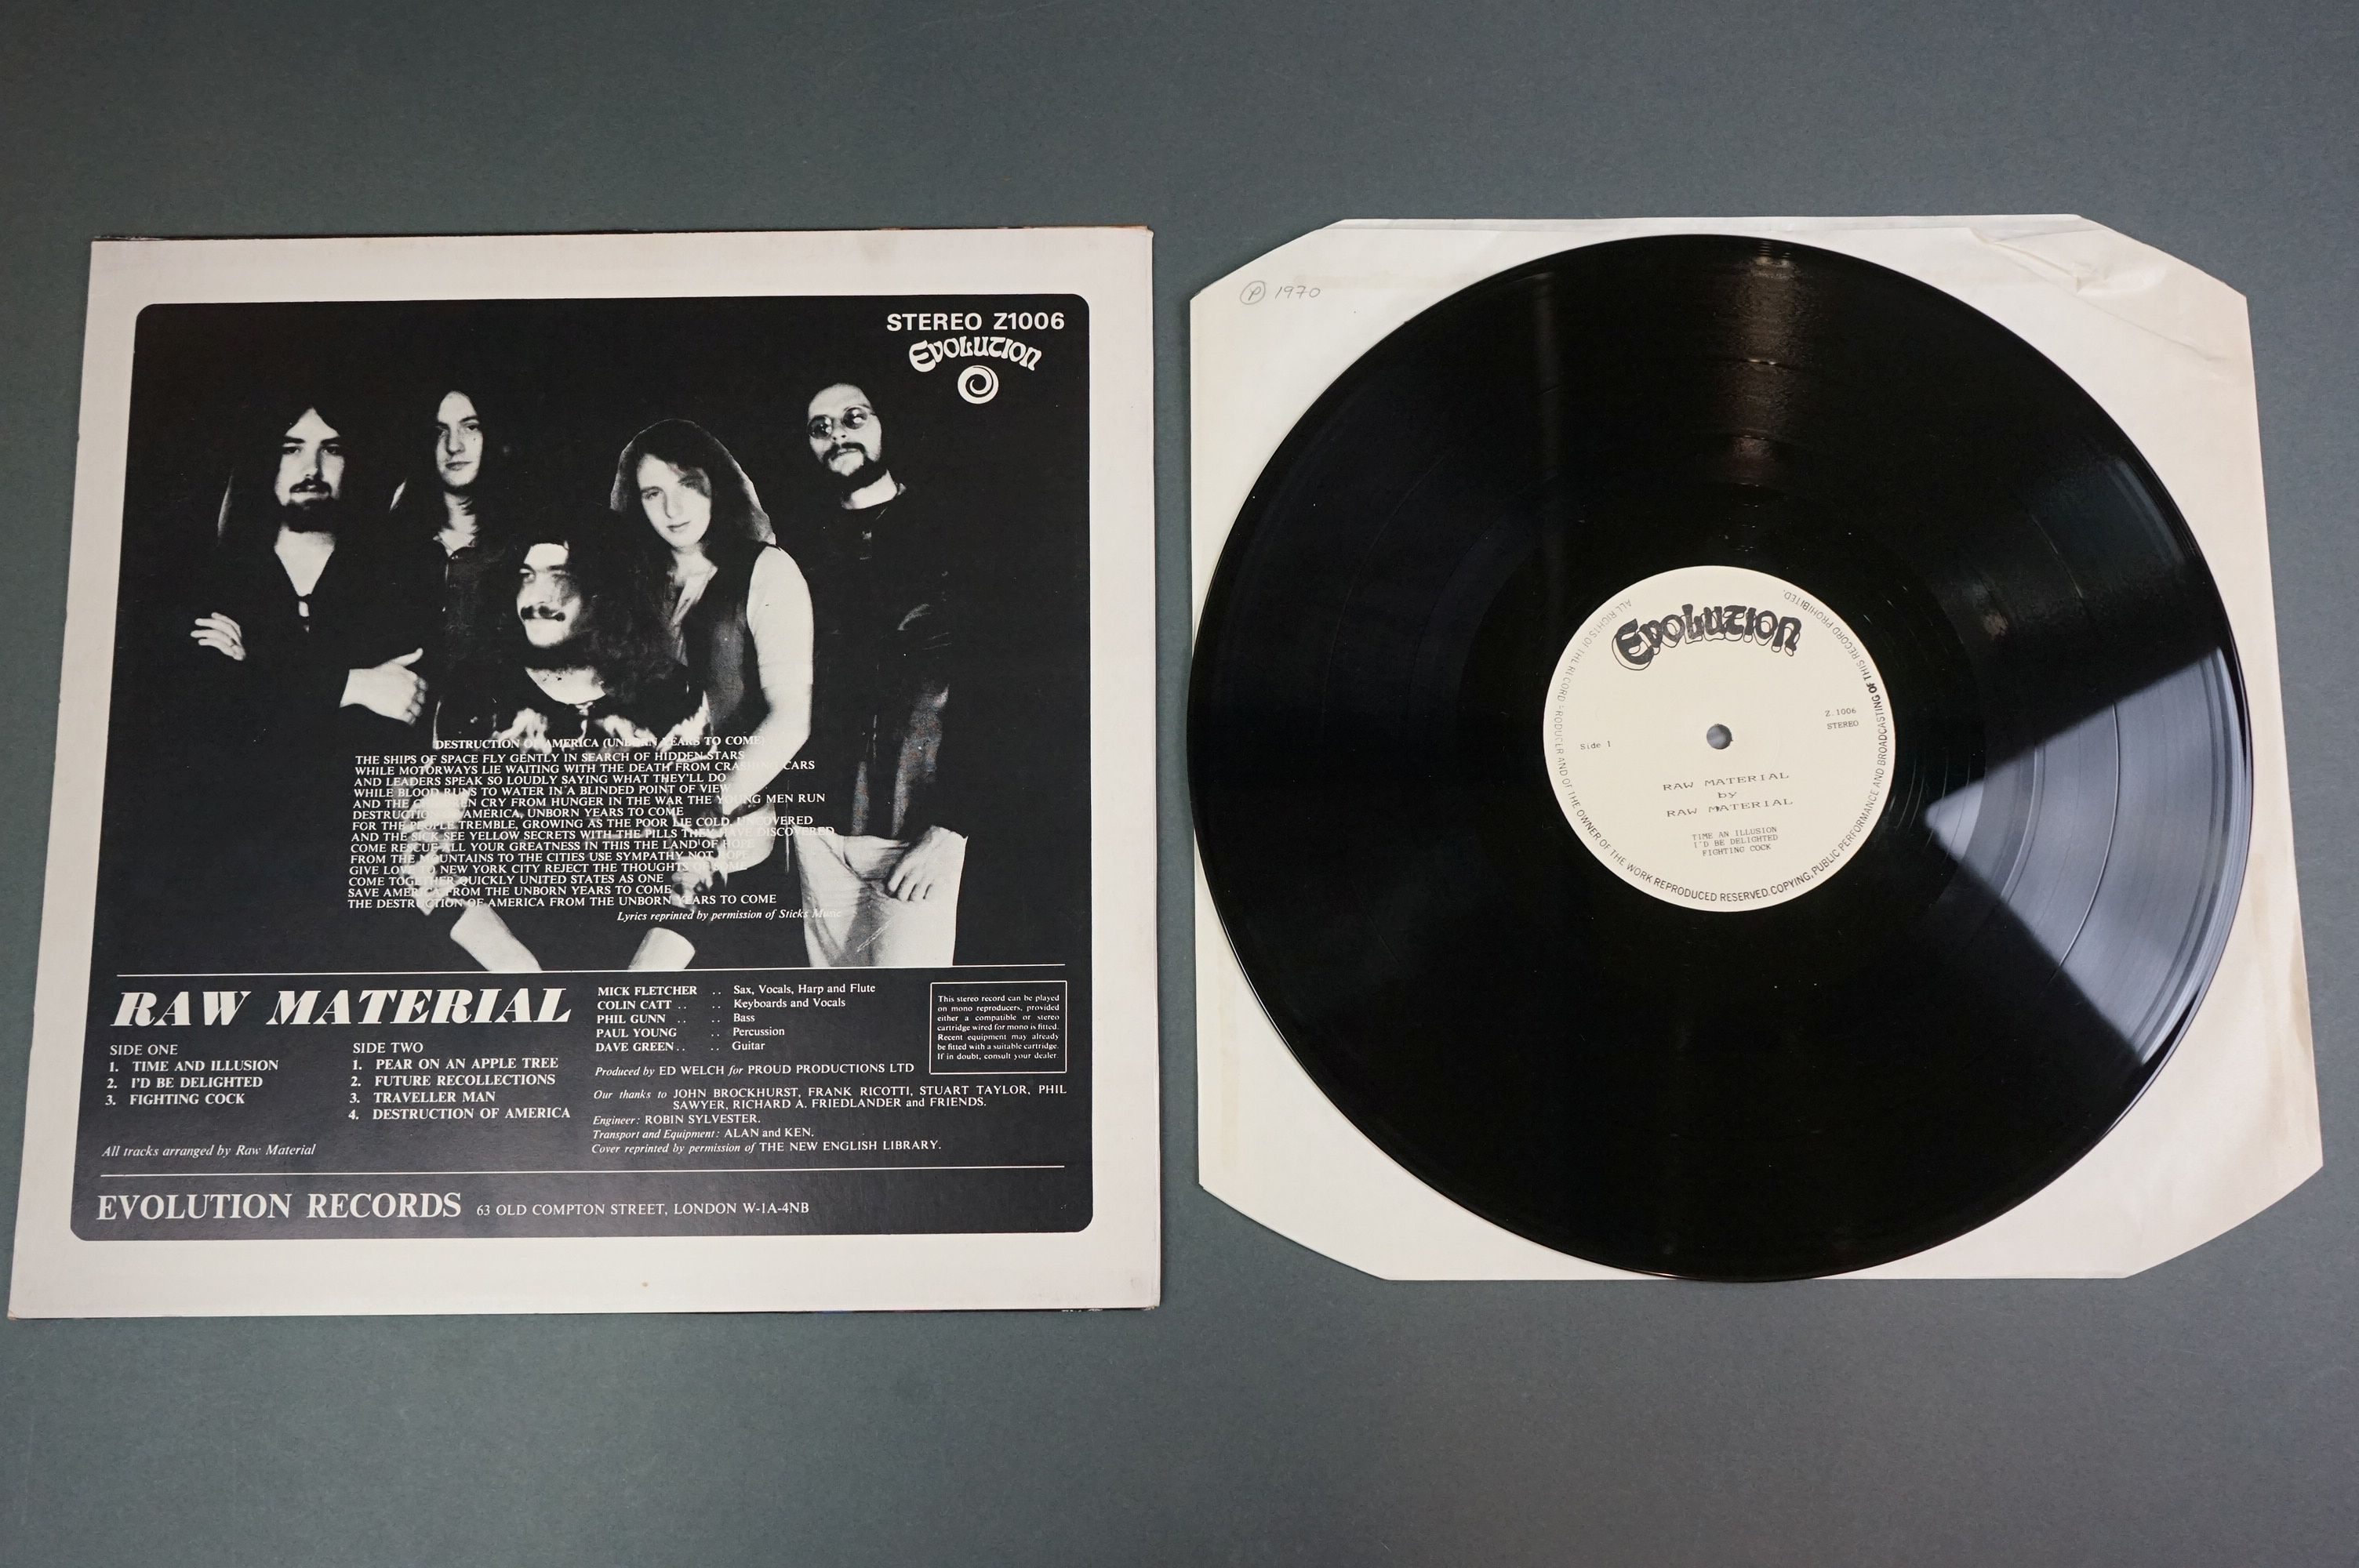 Vinyl - Two unofficial Raw Materials release LPs to include Time Is (NE8) and self titled (Z1006), - Image 6 of 6